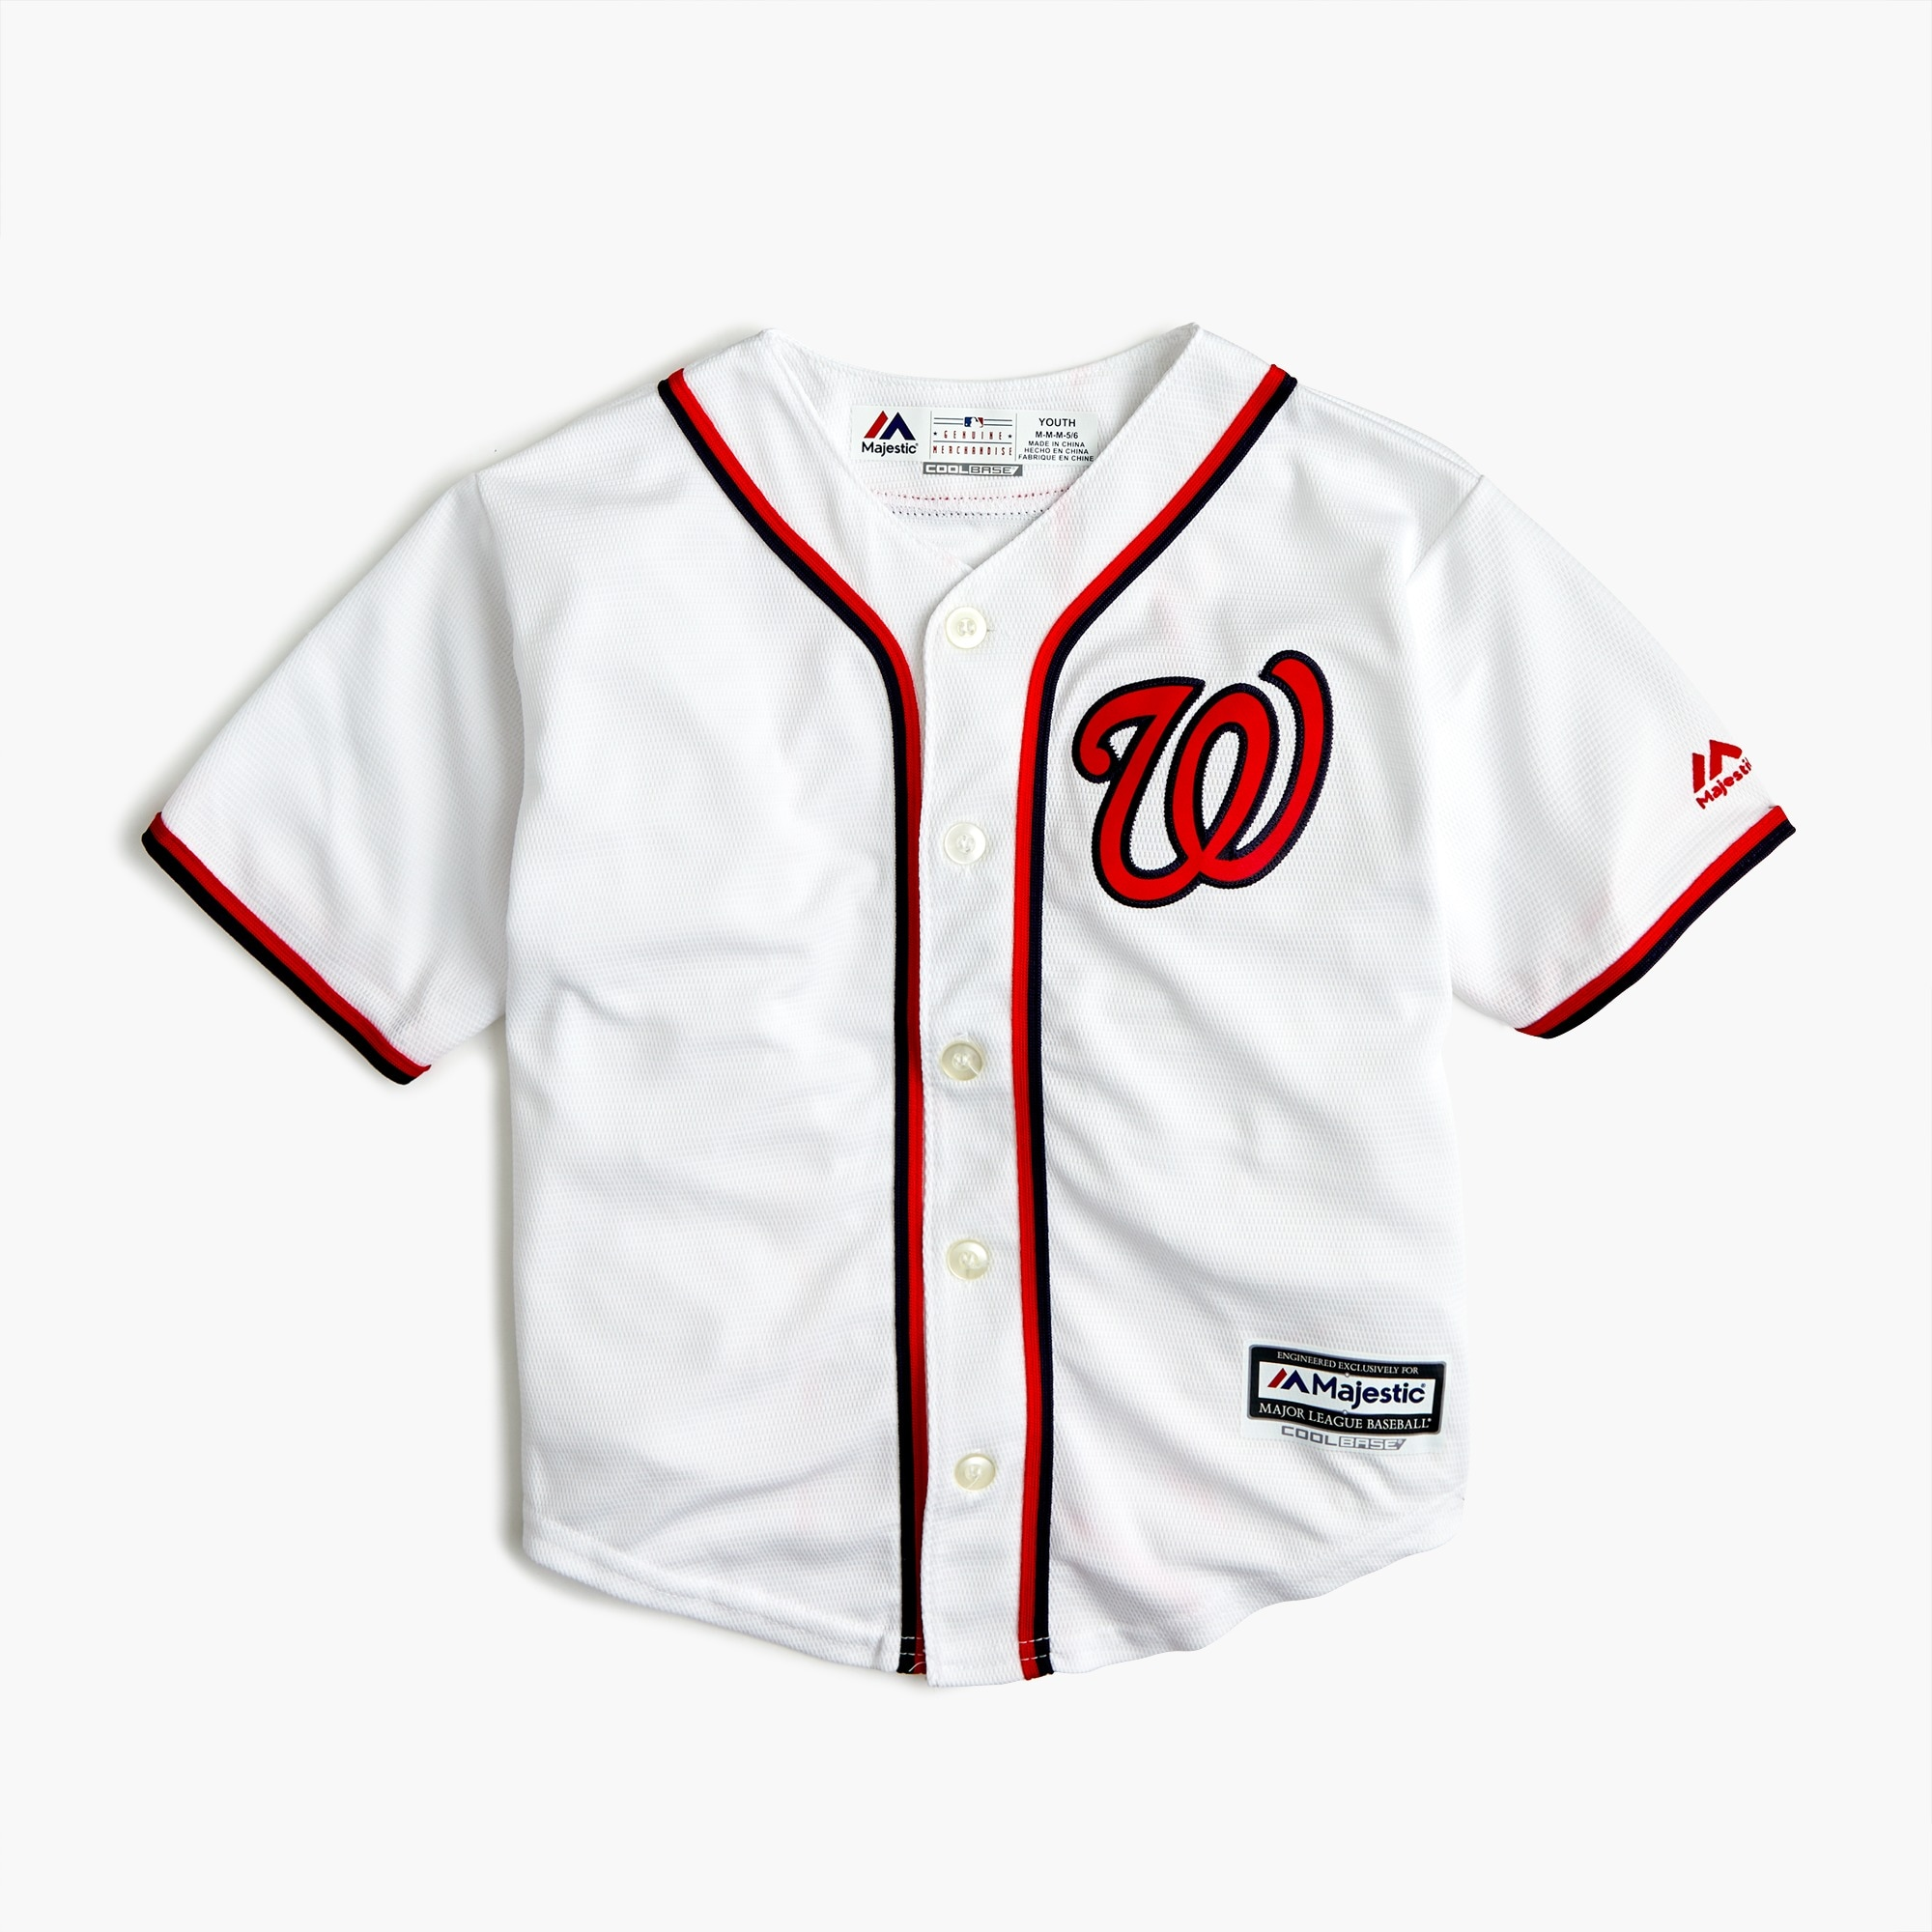 Image 1 for Kids' Washington Nationals jersey